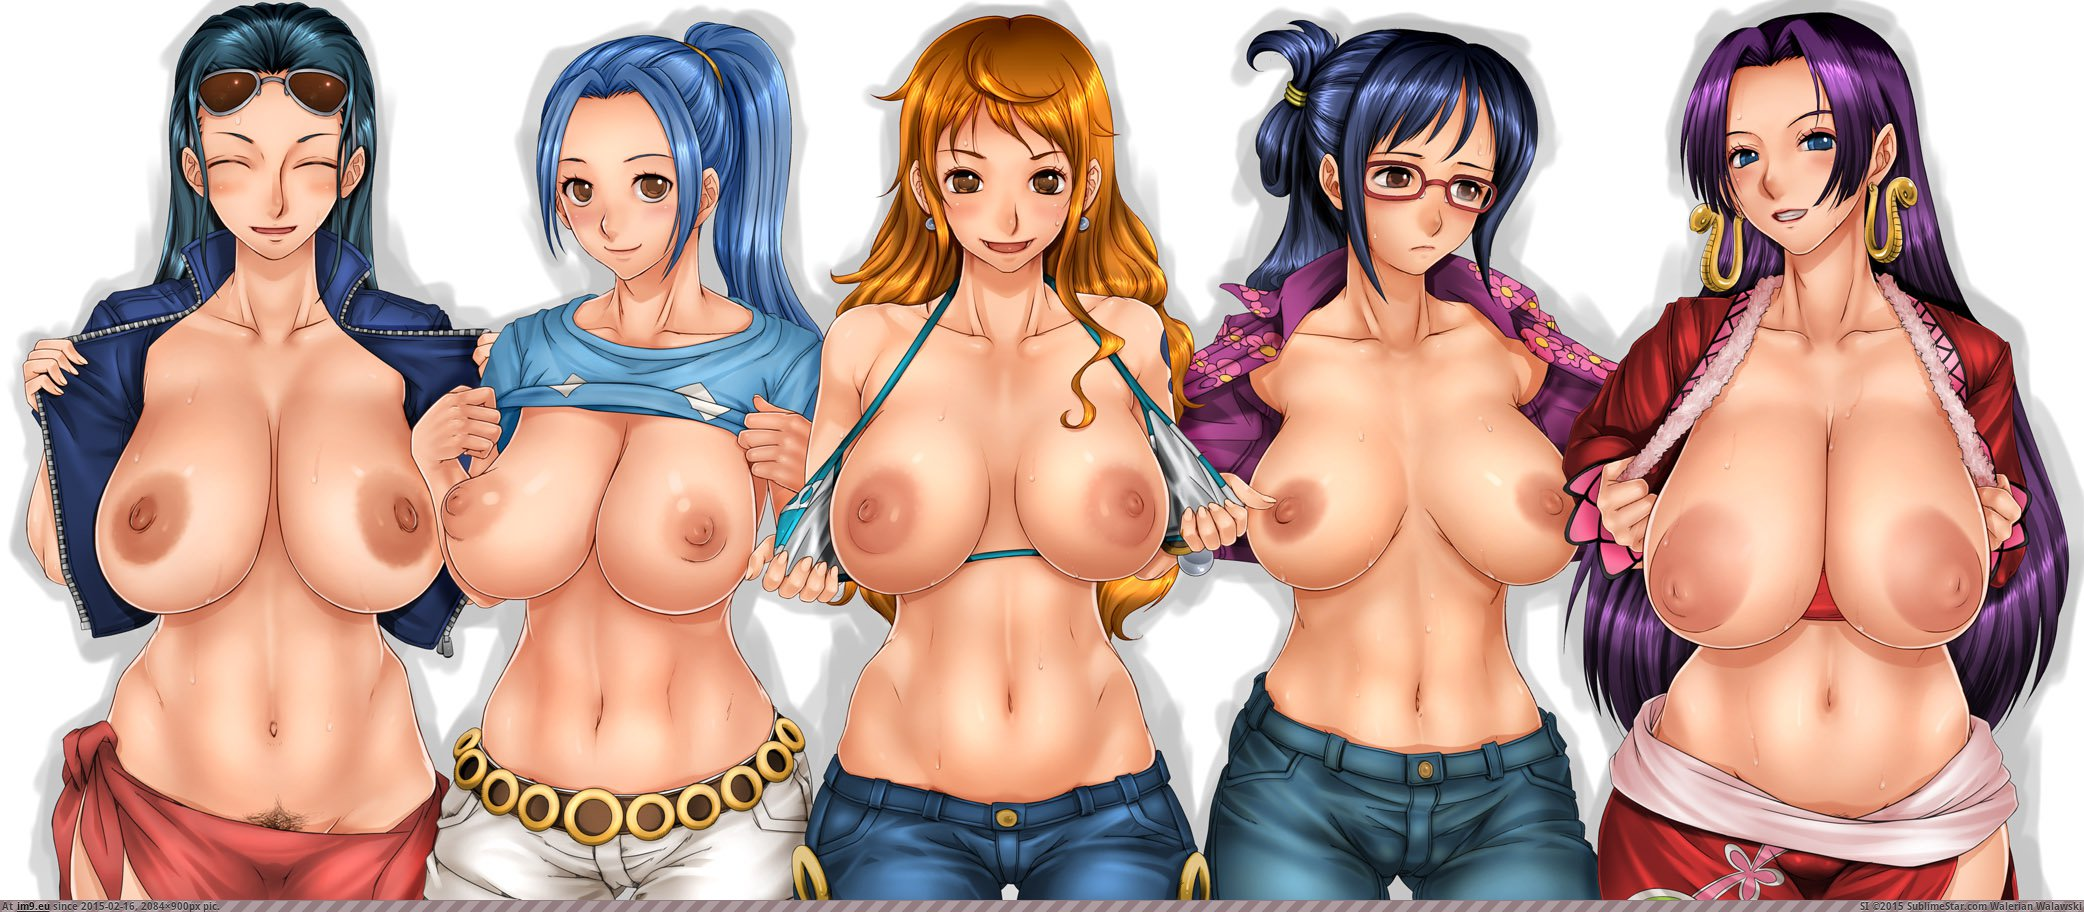 Excited too One piece girls nude well!